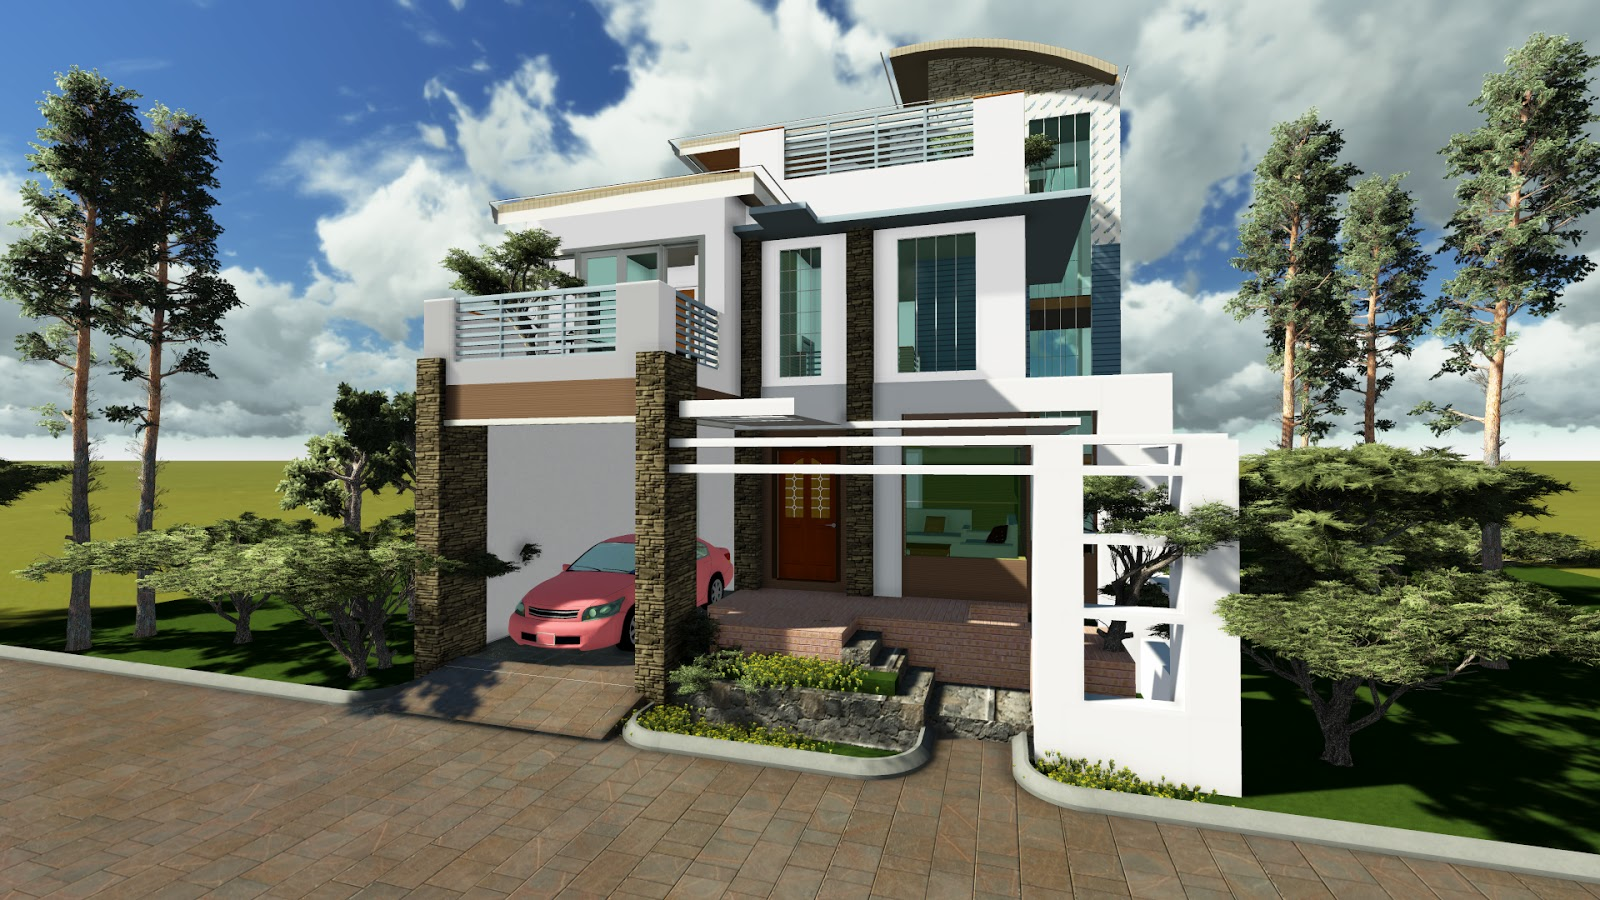 House Designs In The Philippines Iloilo By Erecre Group Realty. Model Home  Construction Kit